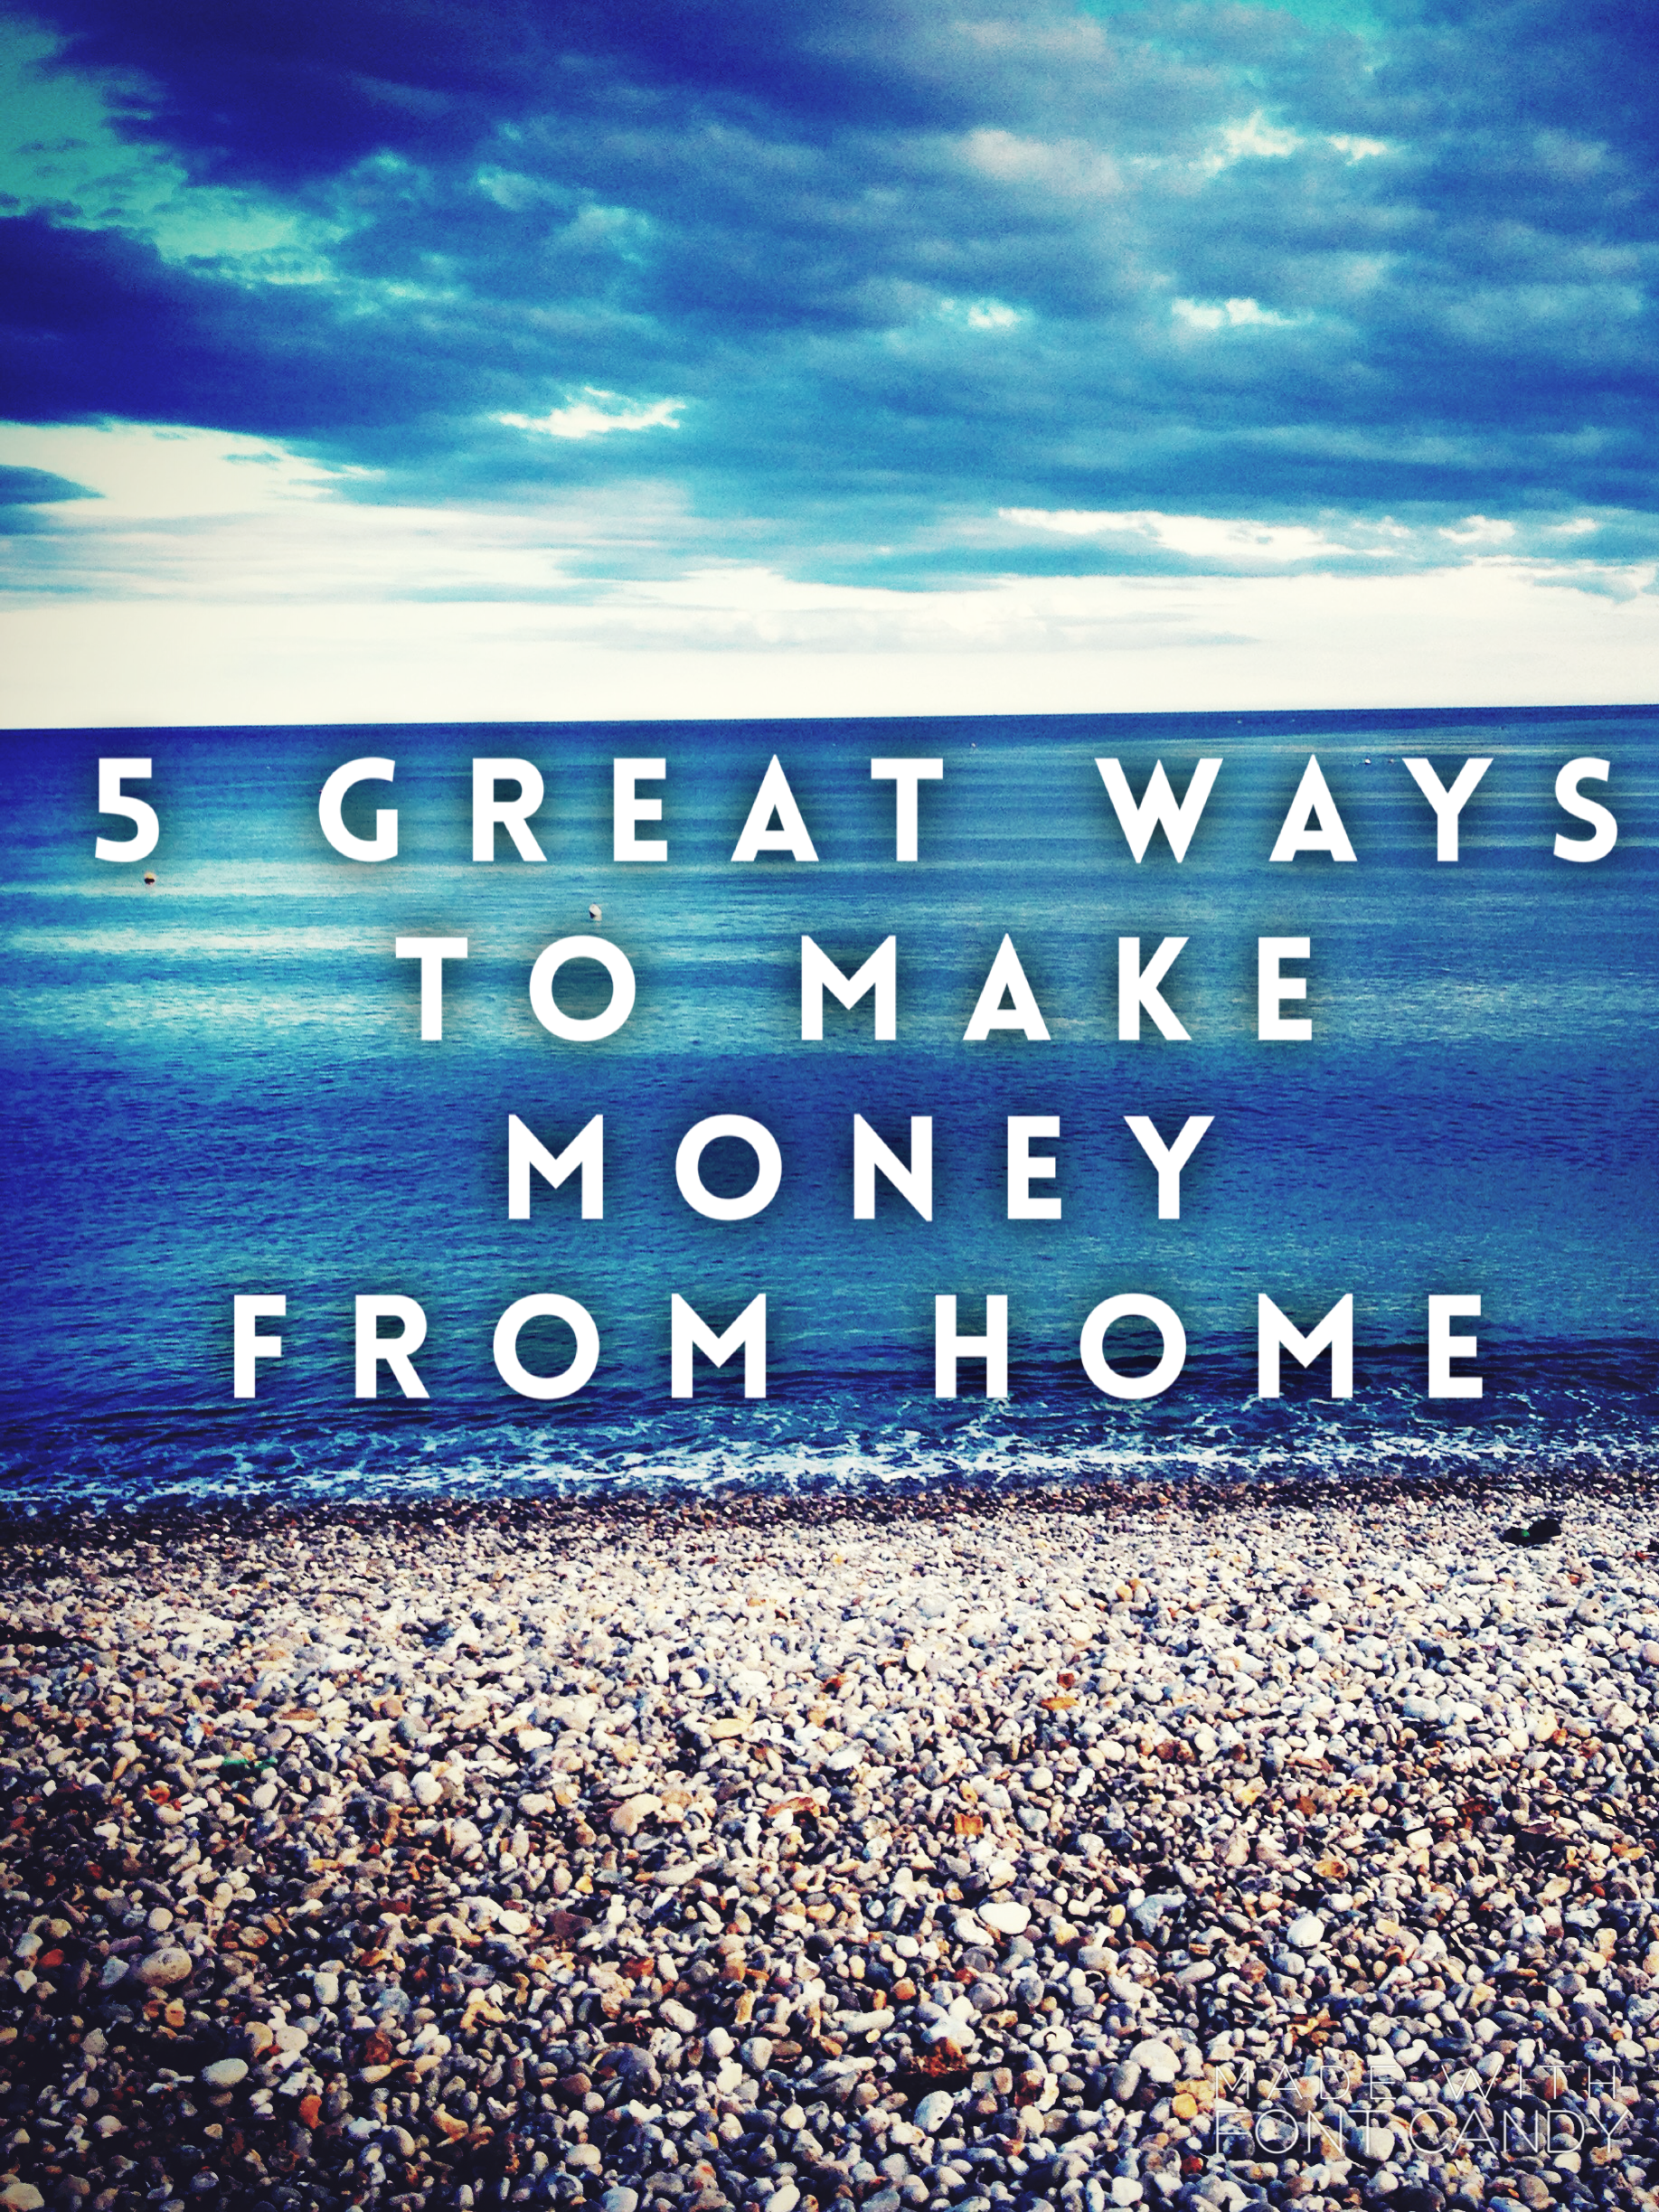 if you're in need of some extra cash, heres 5 great ways you could make some money from home